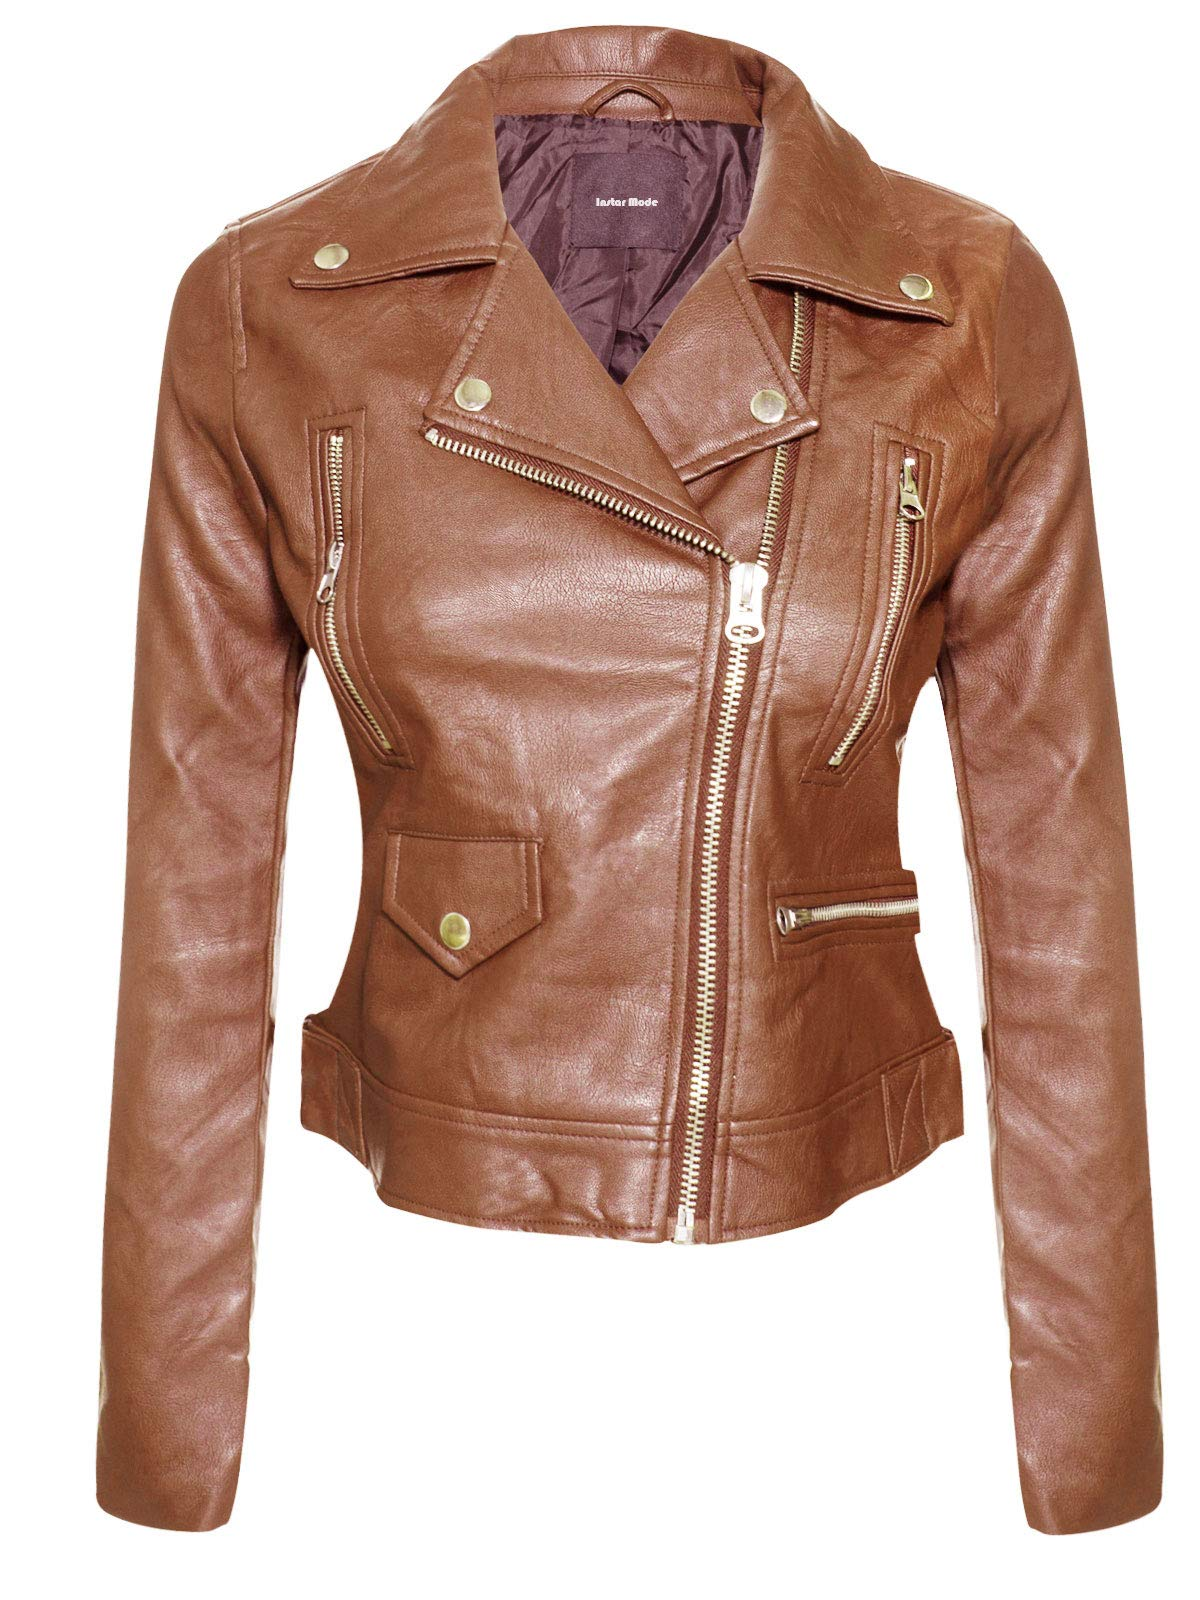 Instar Mode Women's Long Sleeve Zipper Closure Moto Biker Faux Leather Jacket Brown S